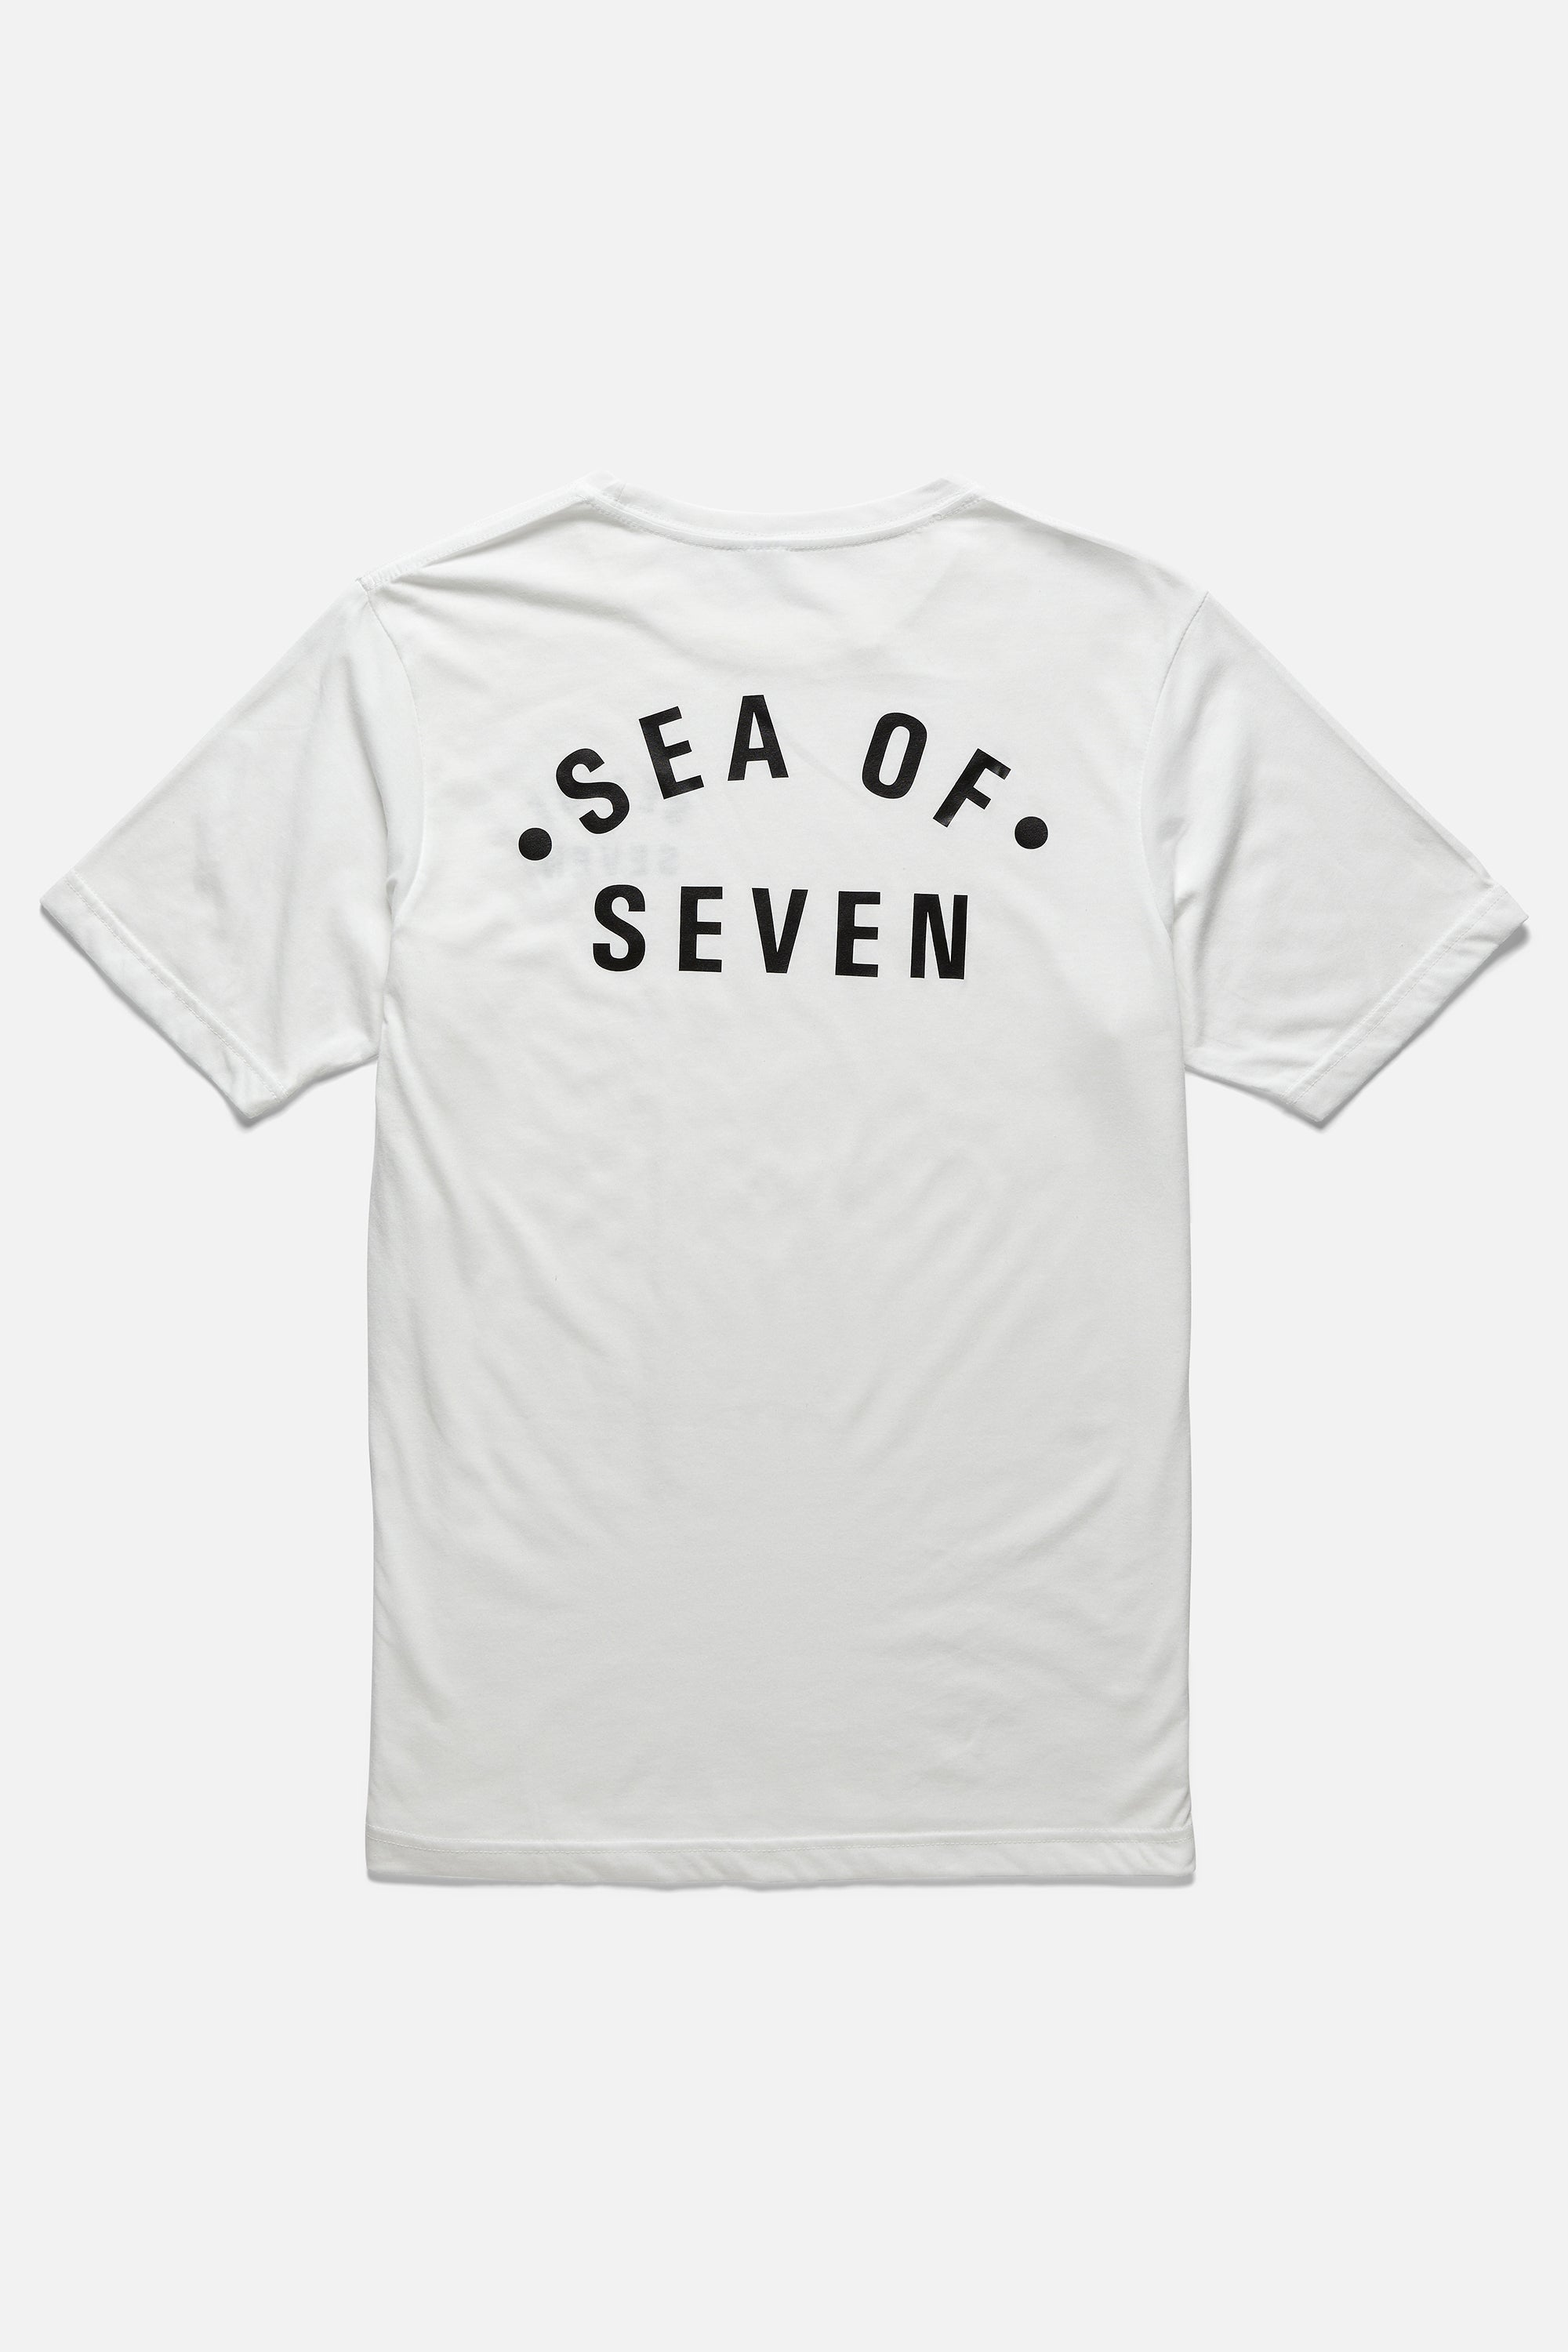 SEA OF SEVEN printed on back of mens white short sleeve t-shirt